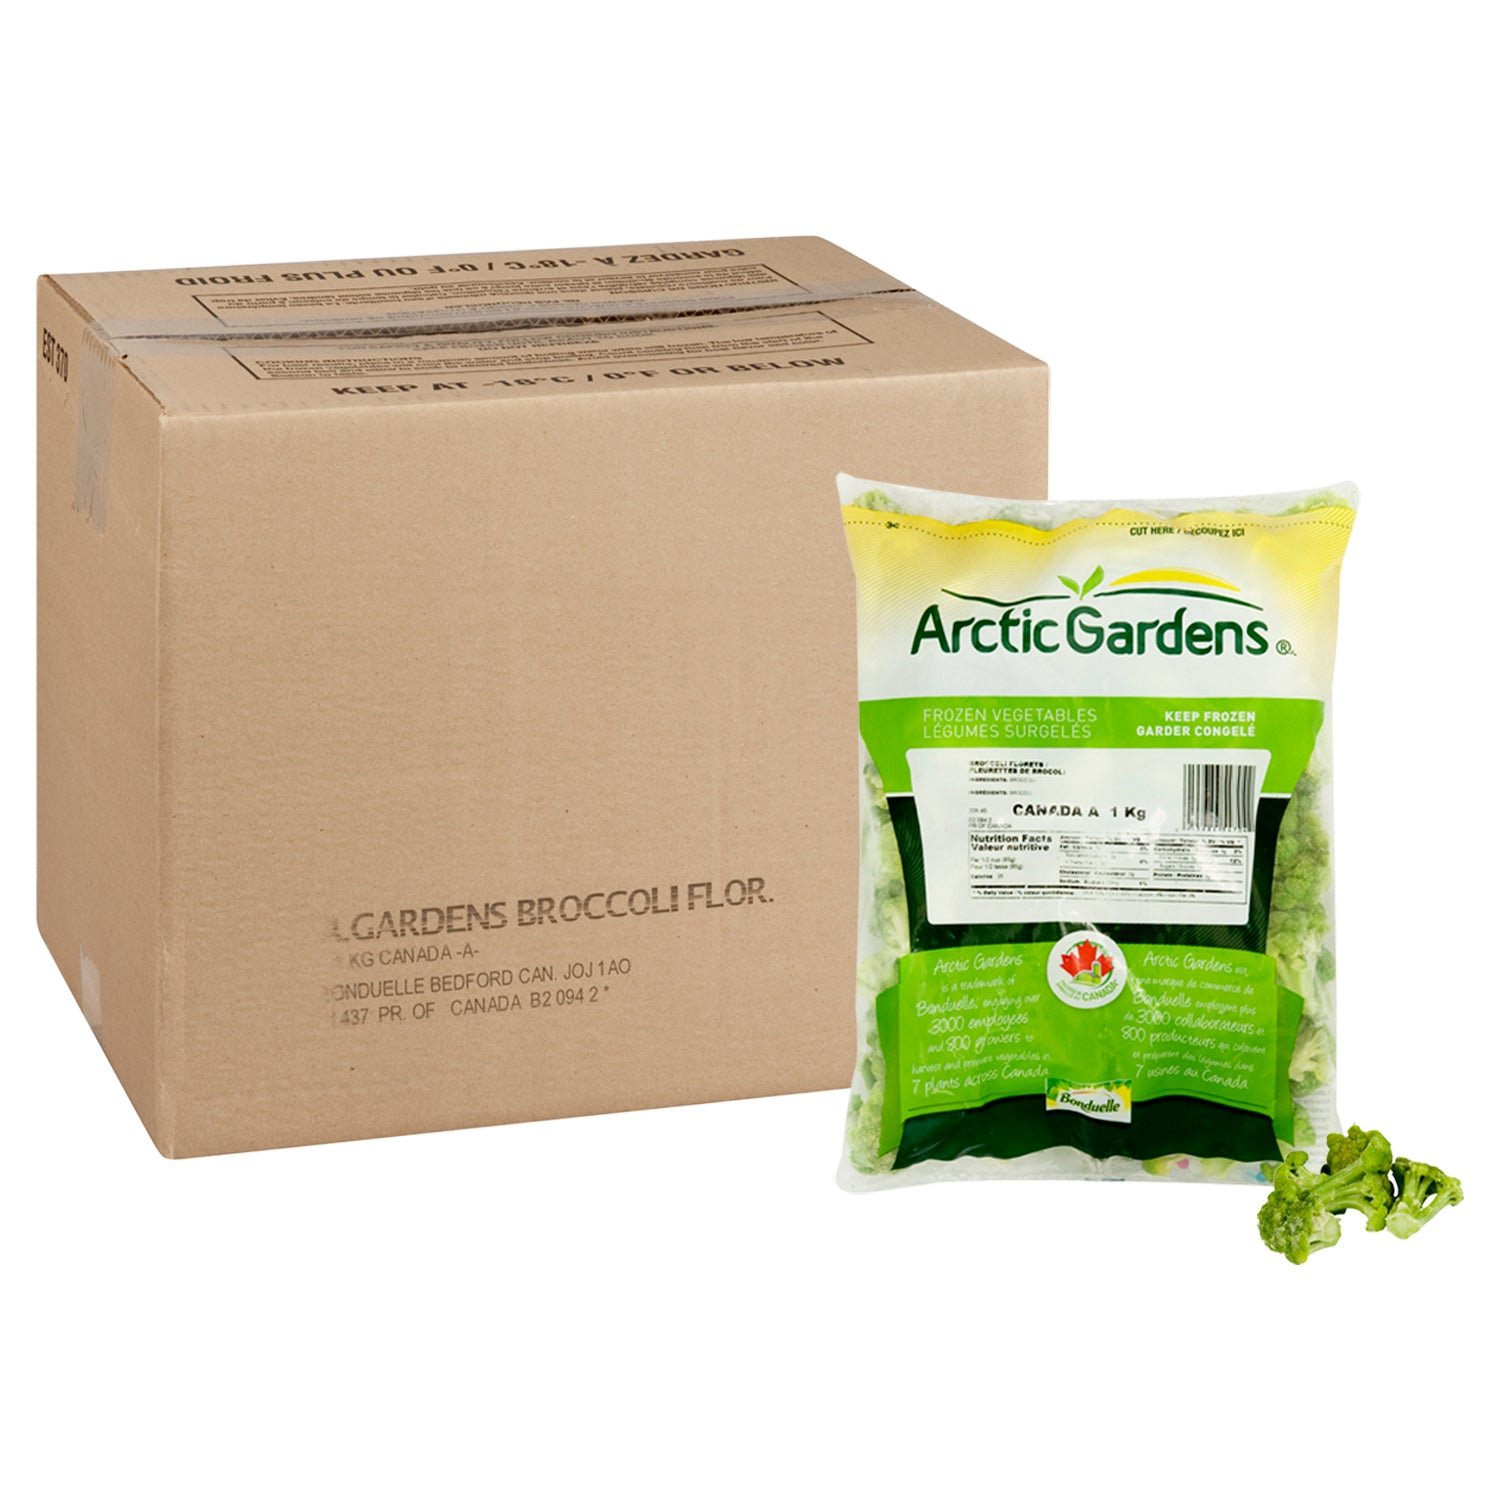 Arctic Garden Frozen Broccoli Florets 1 kg Value Size - 8 Pack [$5.37/kg]